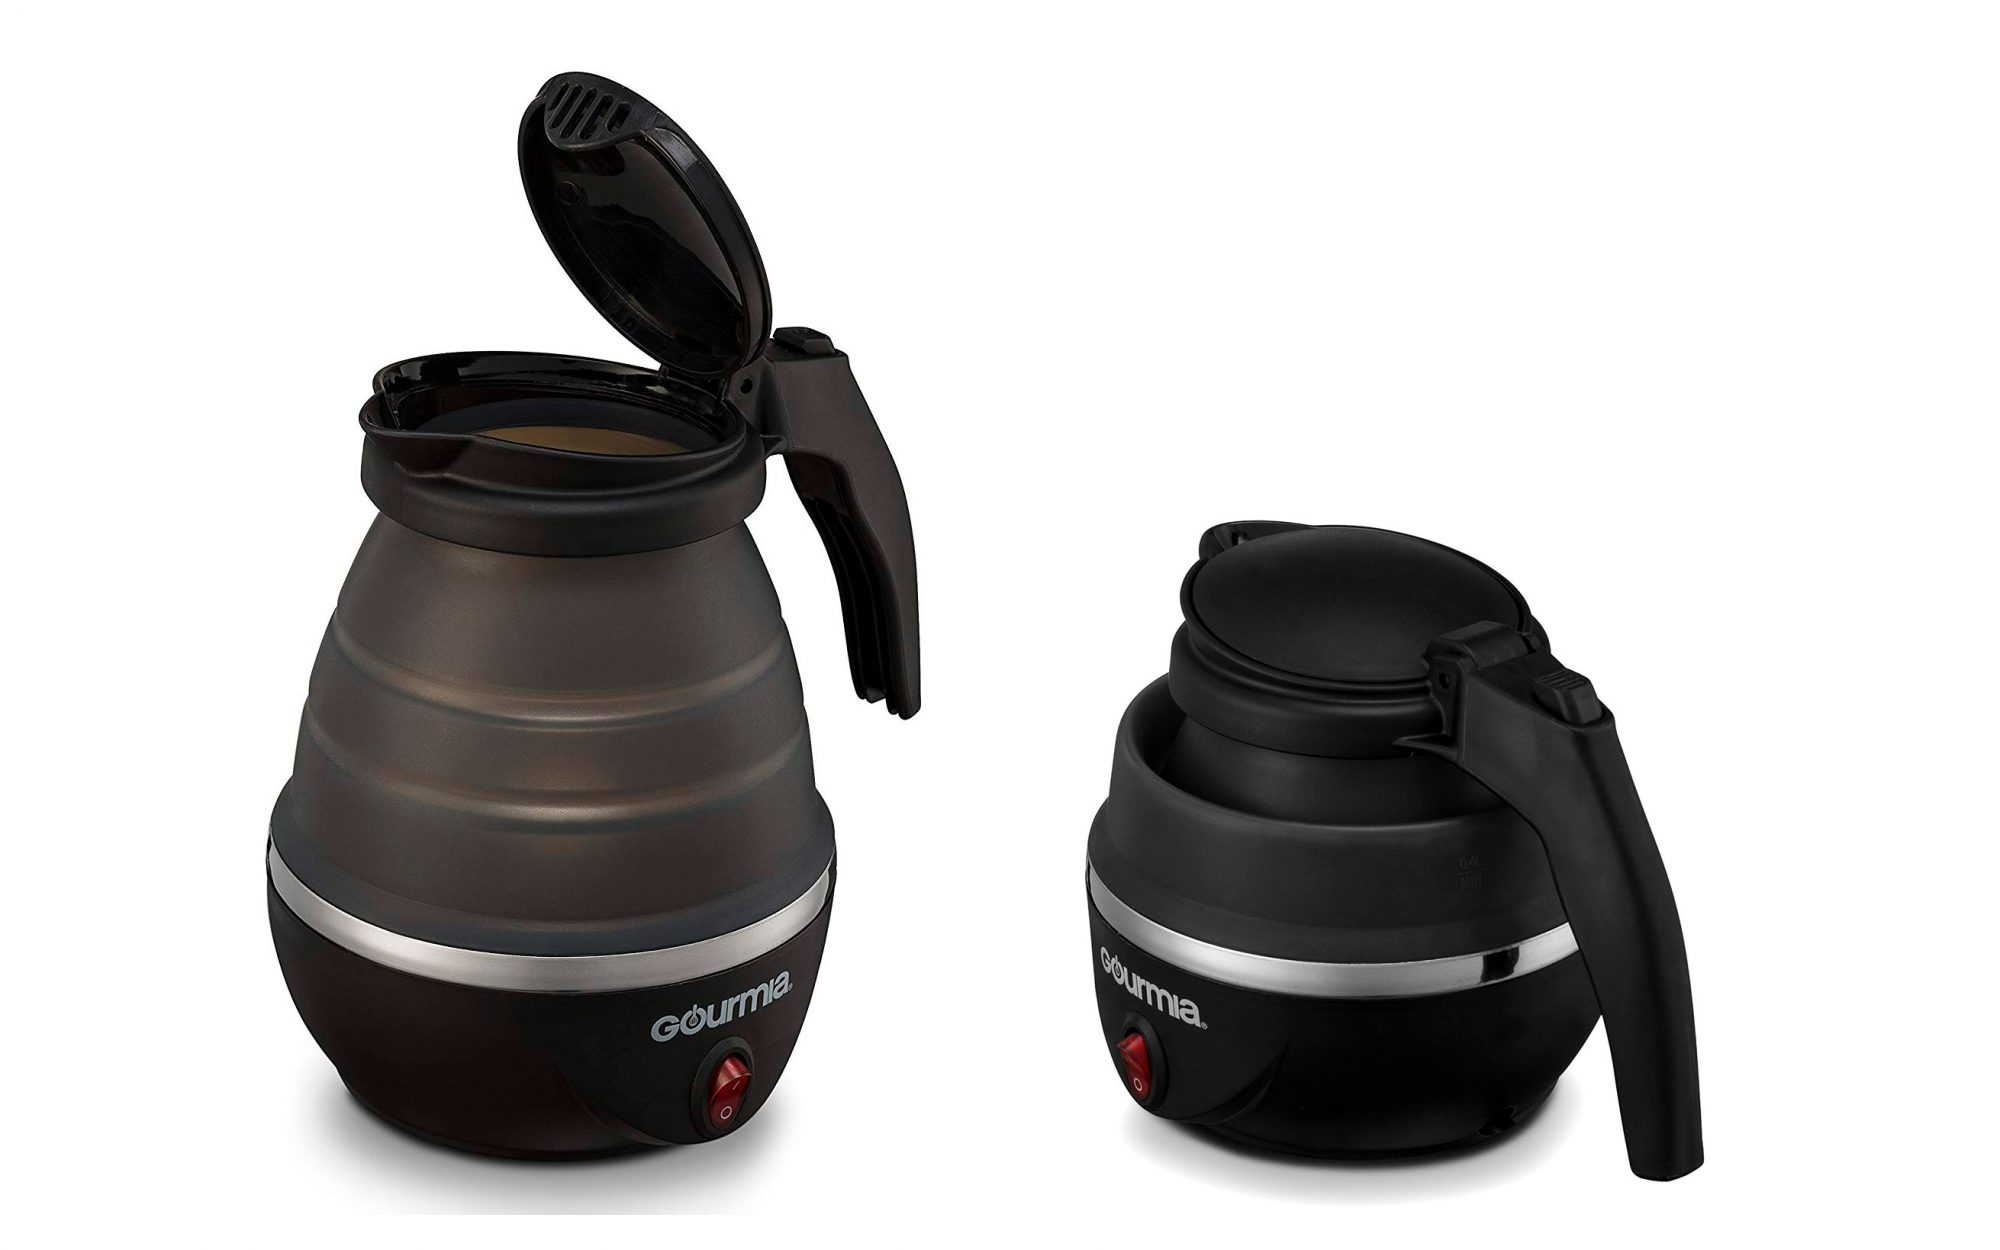 This foldable electric kettle is the ultimate tool for traveling tea-lovers